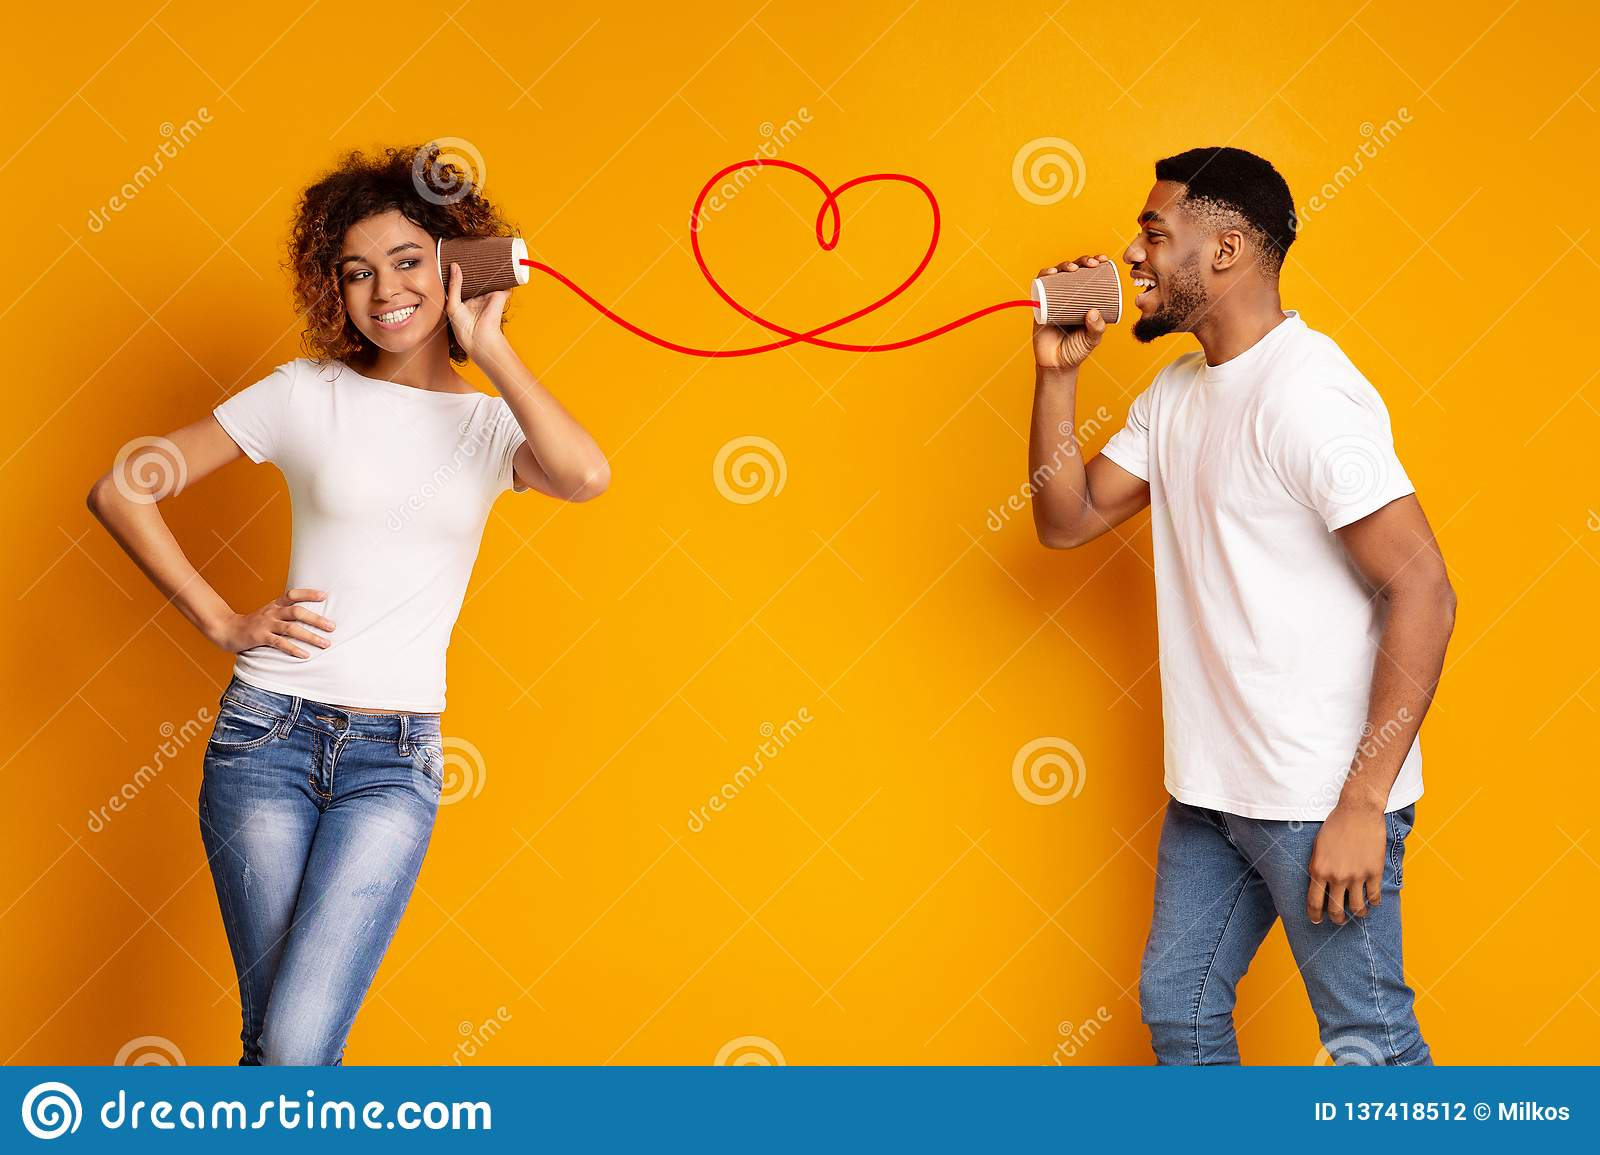 e7e6aa7e02 Young Black Couple With Can Phone On Orange Background Stock Photo ...